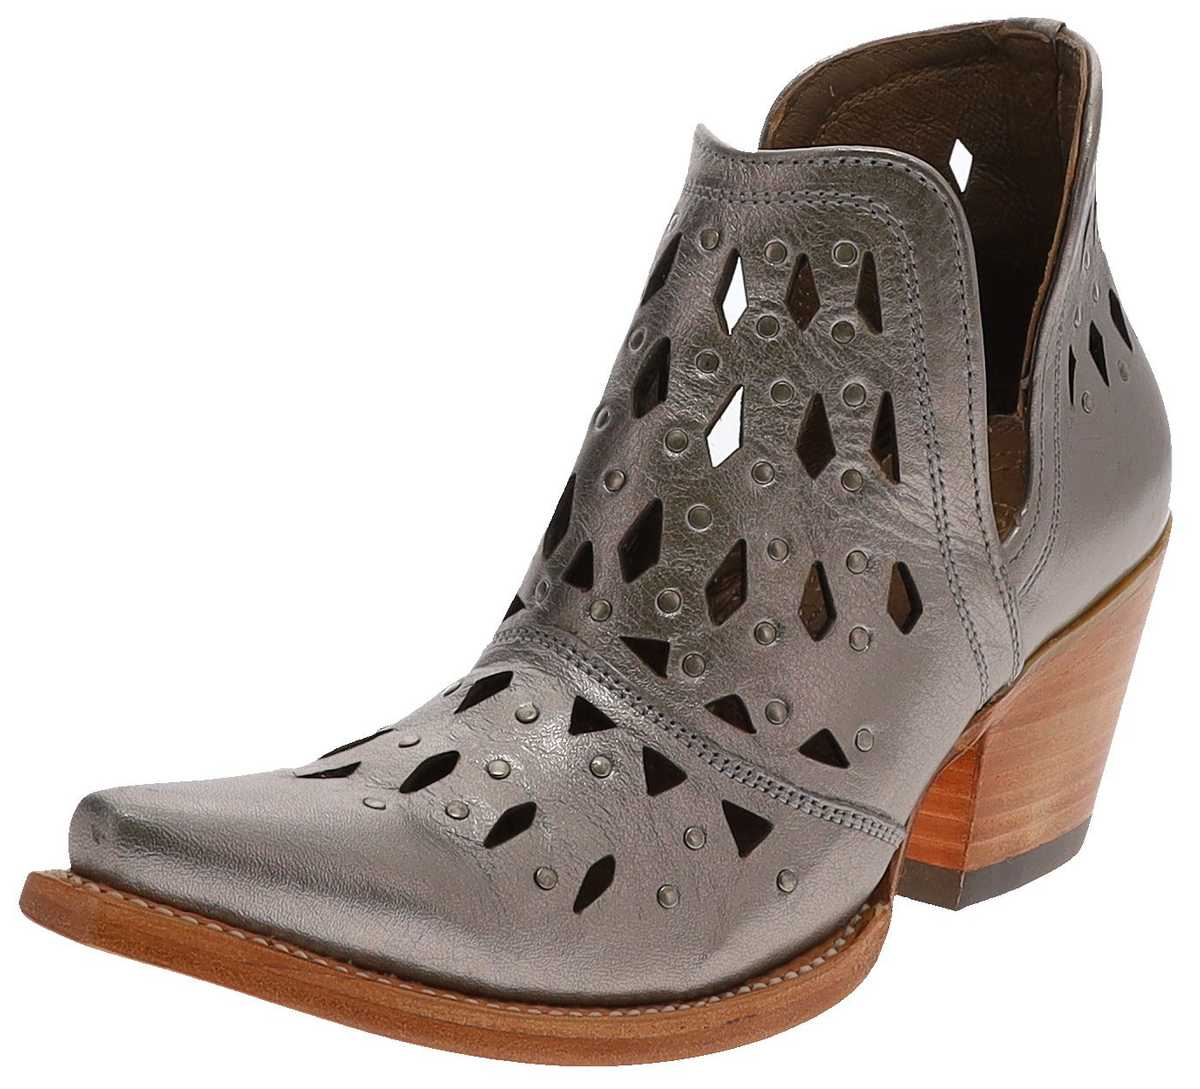 Ariat 31501 DIXON STUDDED Metallic women's leather shoes - silver